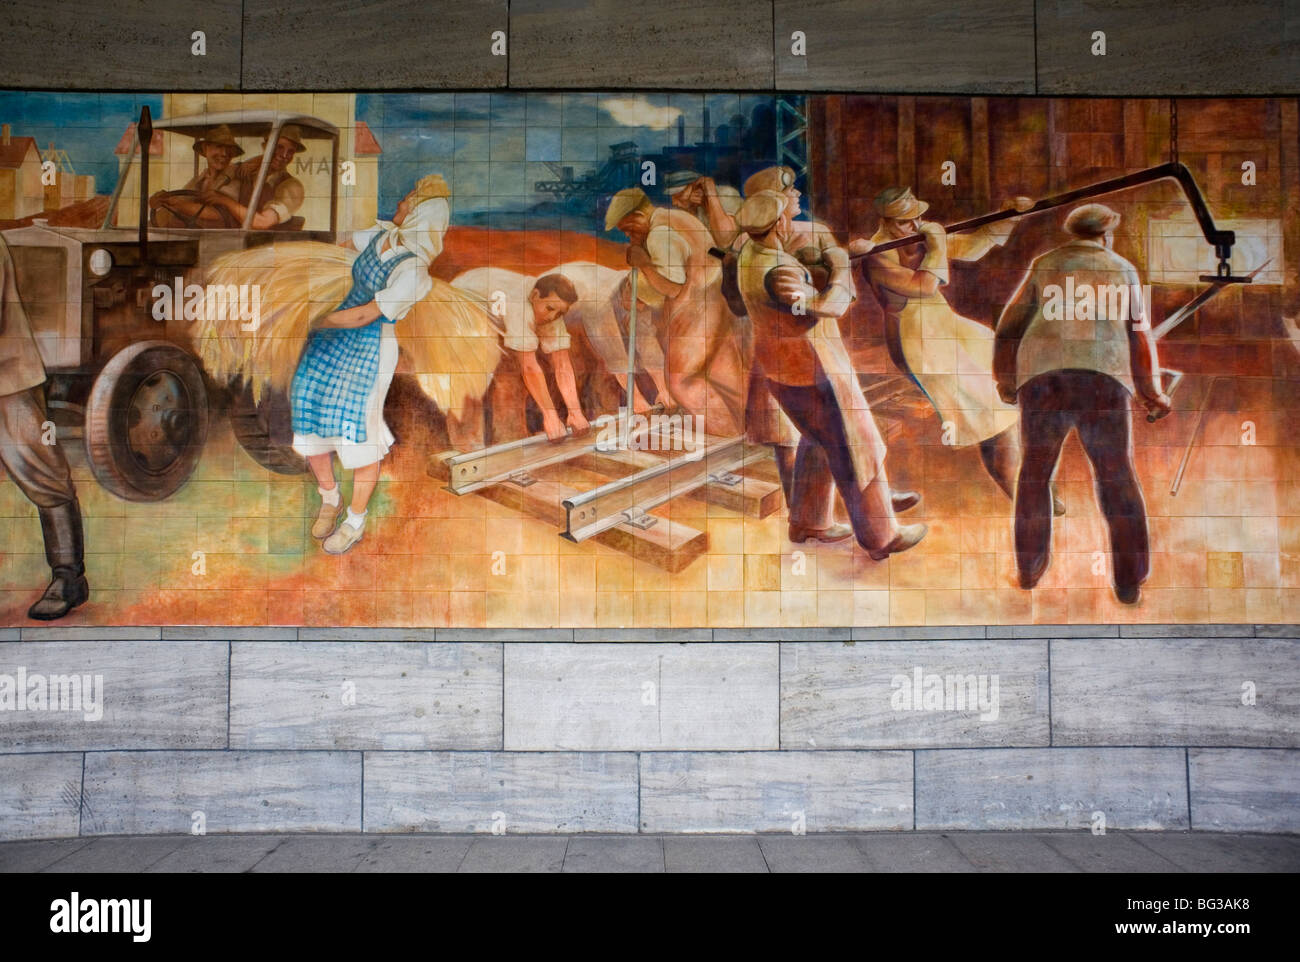 Berlin 2009 Mural Workers Socialism socialist industry soviet mass Finance peace air ministry 1989 DDR Germany Unified - Stock Image